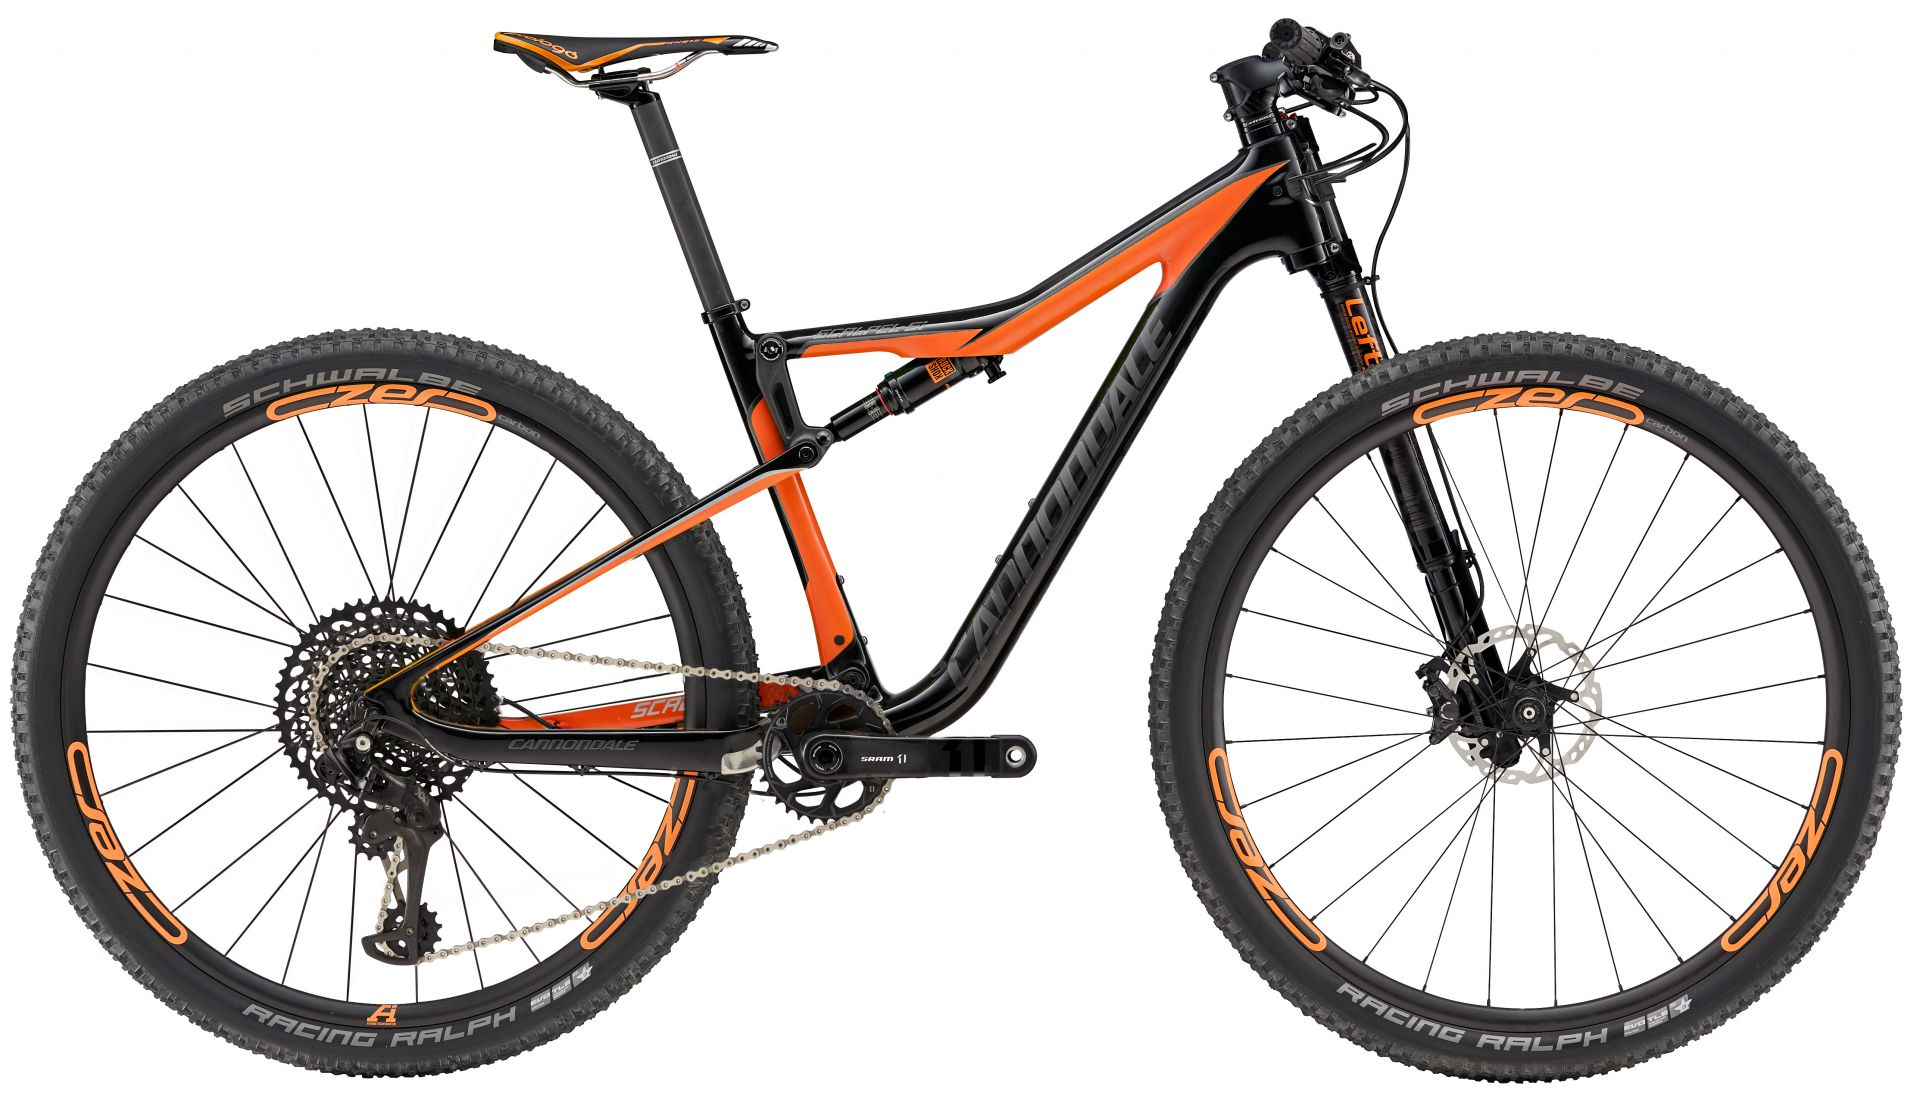 VTT Cannondale Scalpel-Si Carbon 2 Eagle Noir/Orange - M / 29